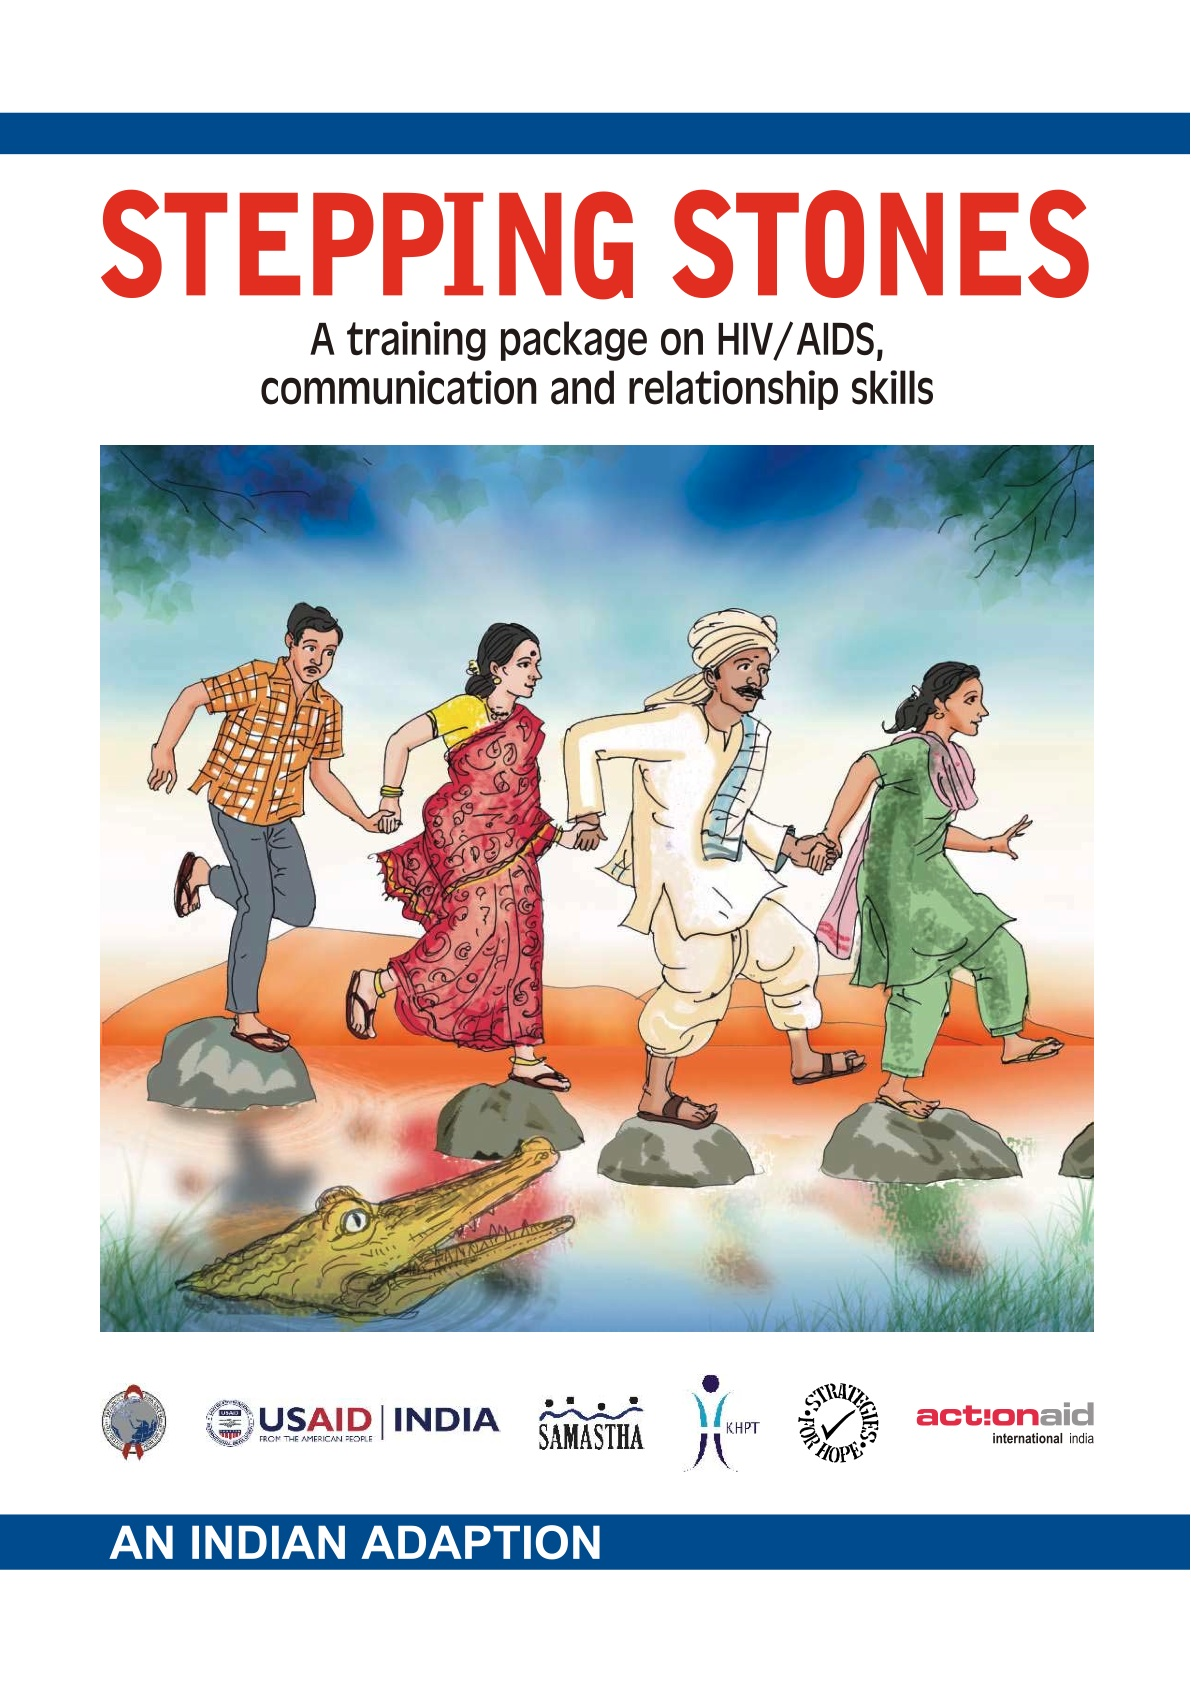 Stepping Stones in India